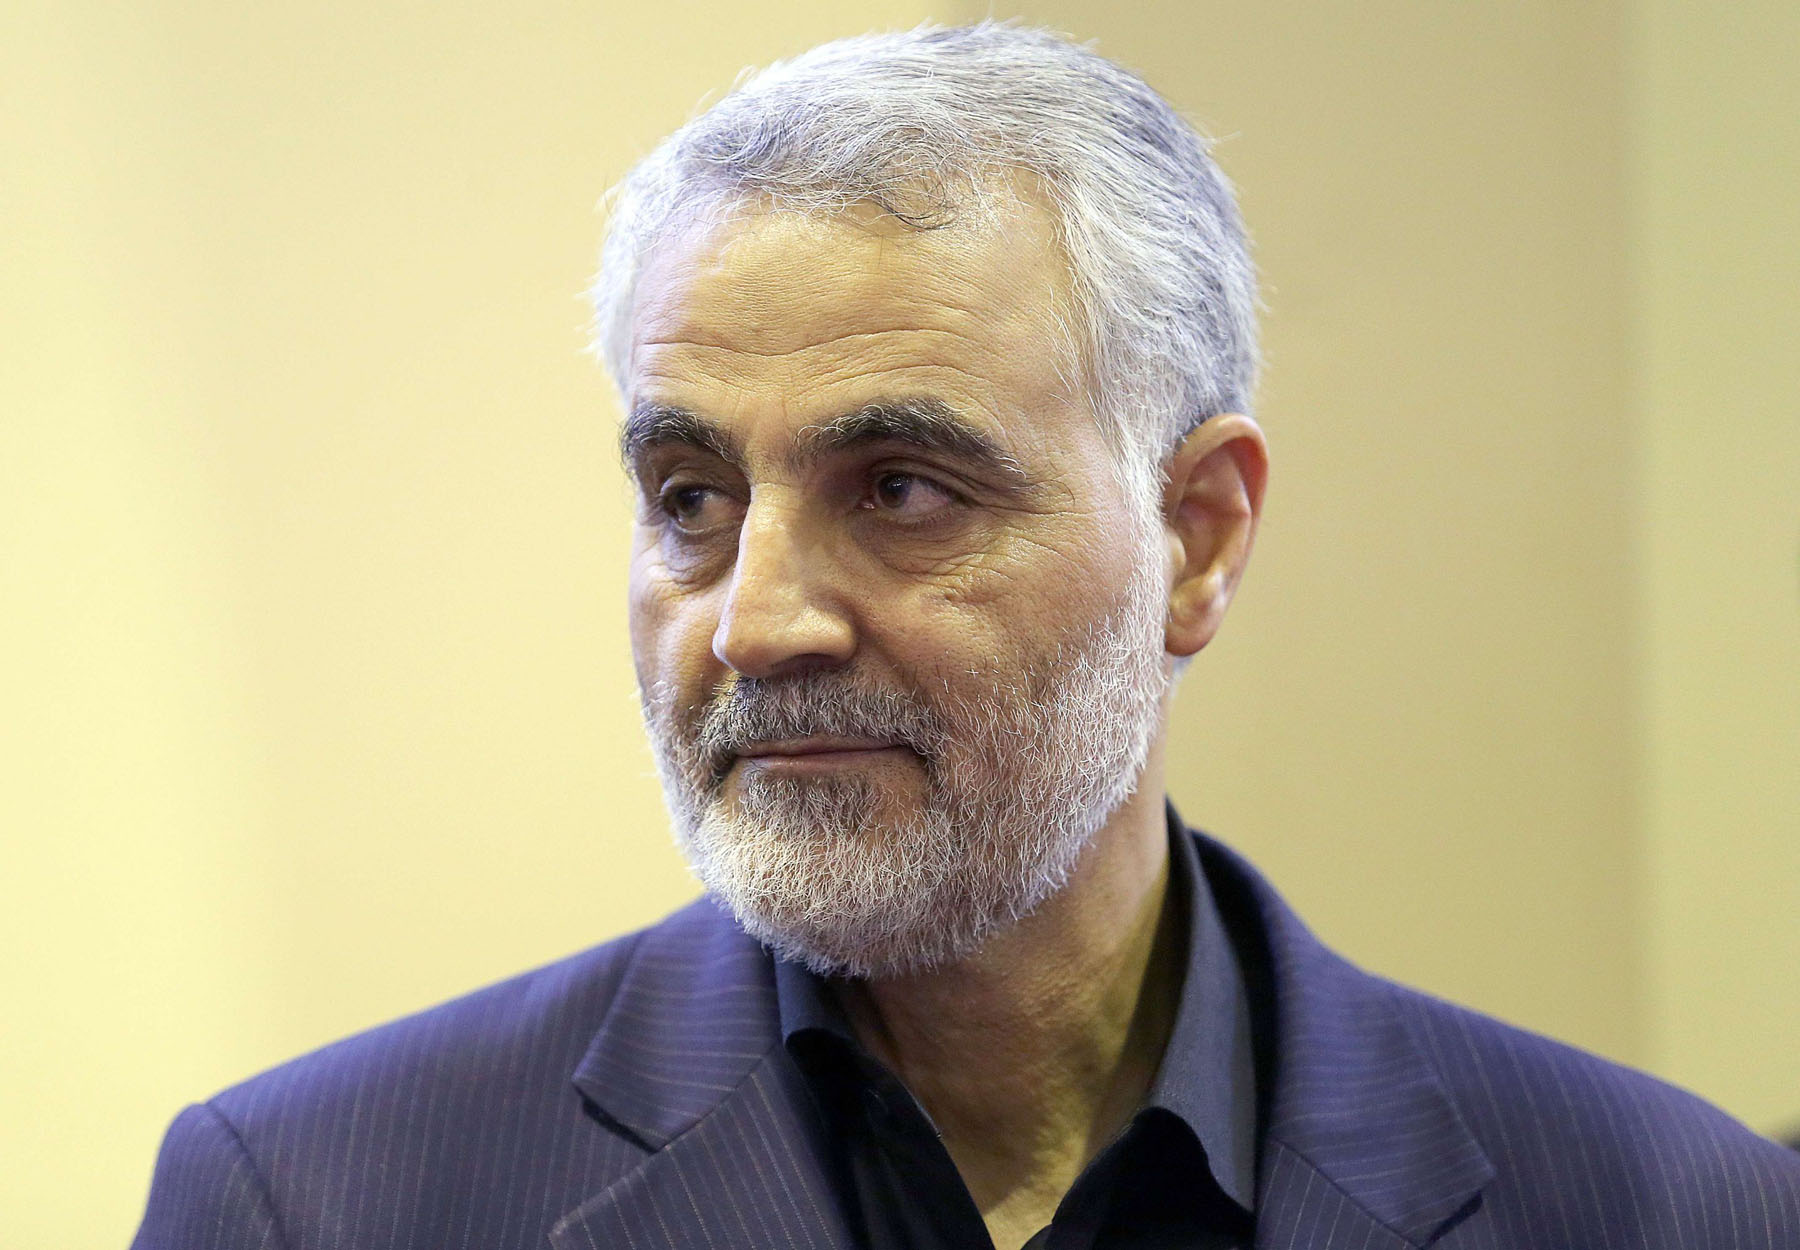 Spearhead of Iran's expansionist policy. Major-General Qassem Soleimani, the commander of Iran's al-Quds Force. (AFP)